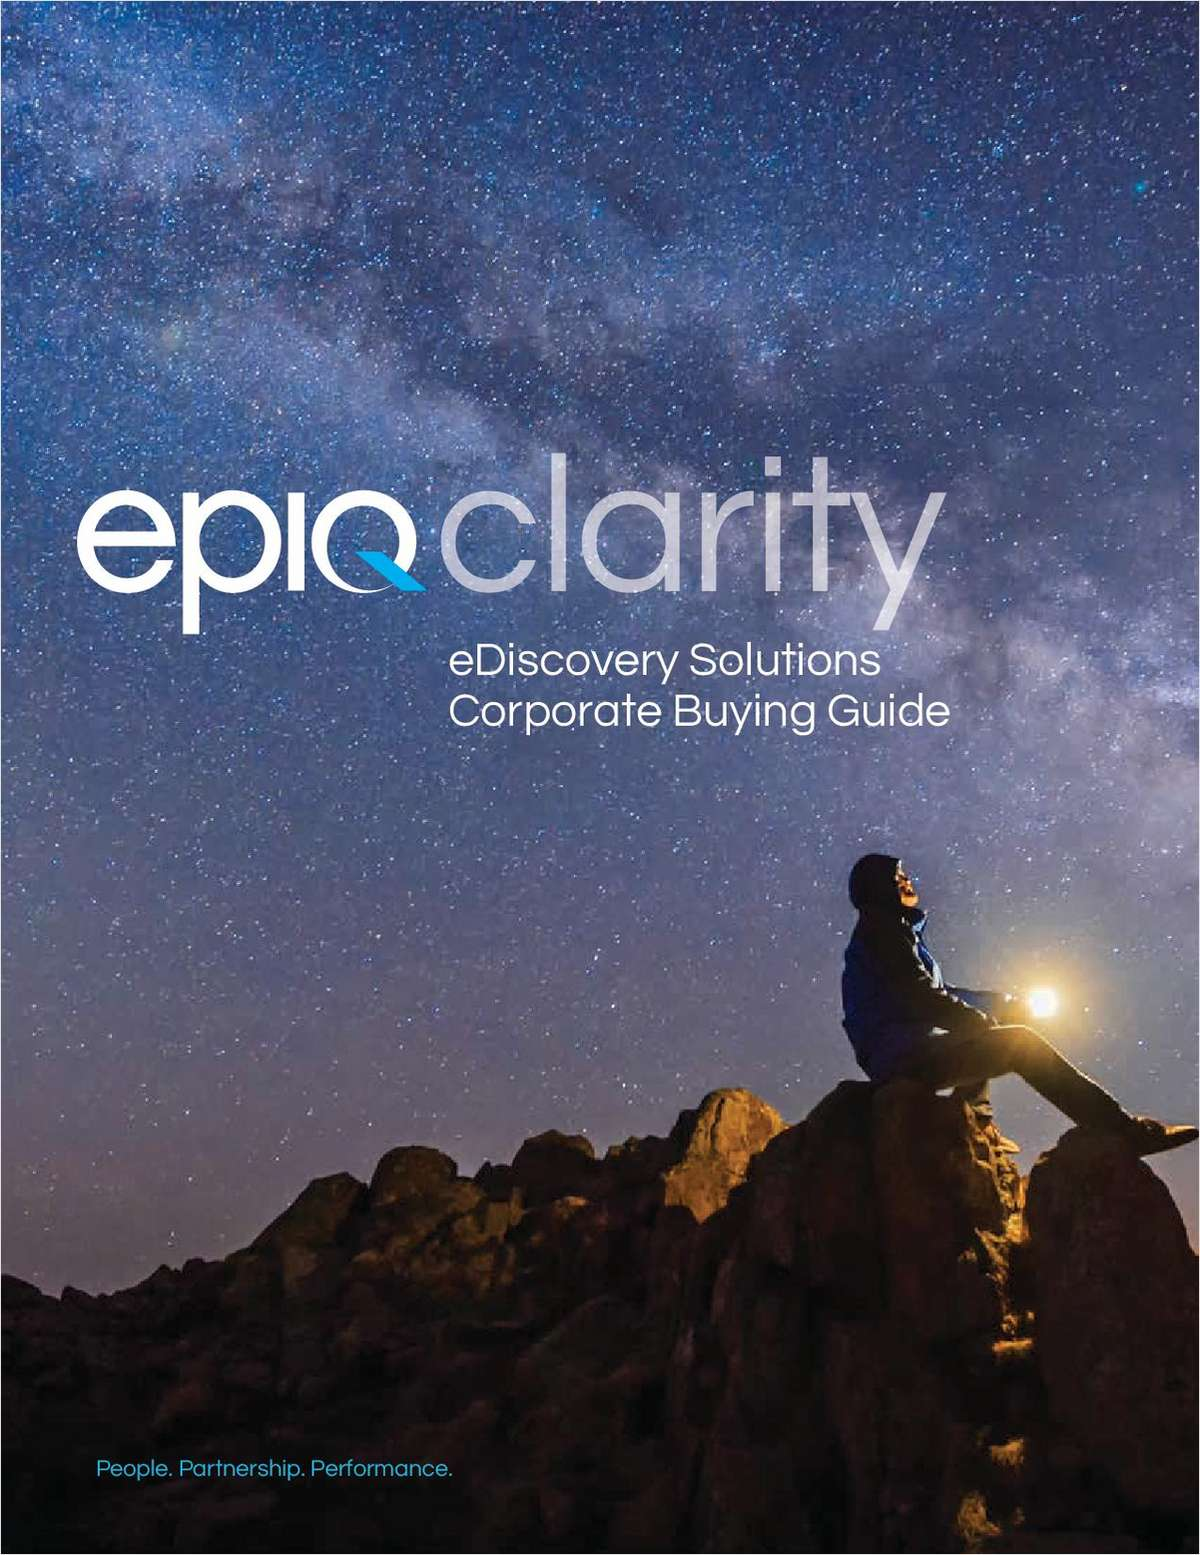 10 Essential Steps to Evaluate & Select an eDiscovery Solution